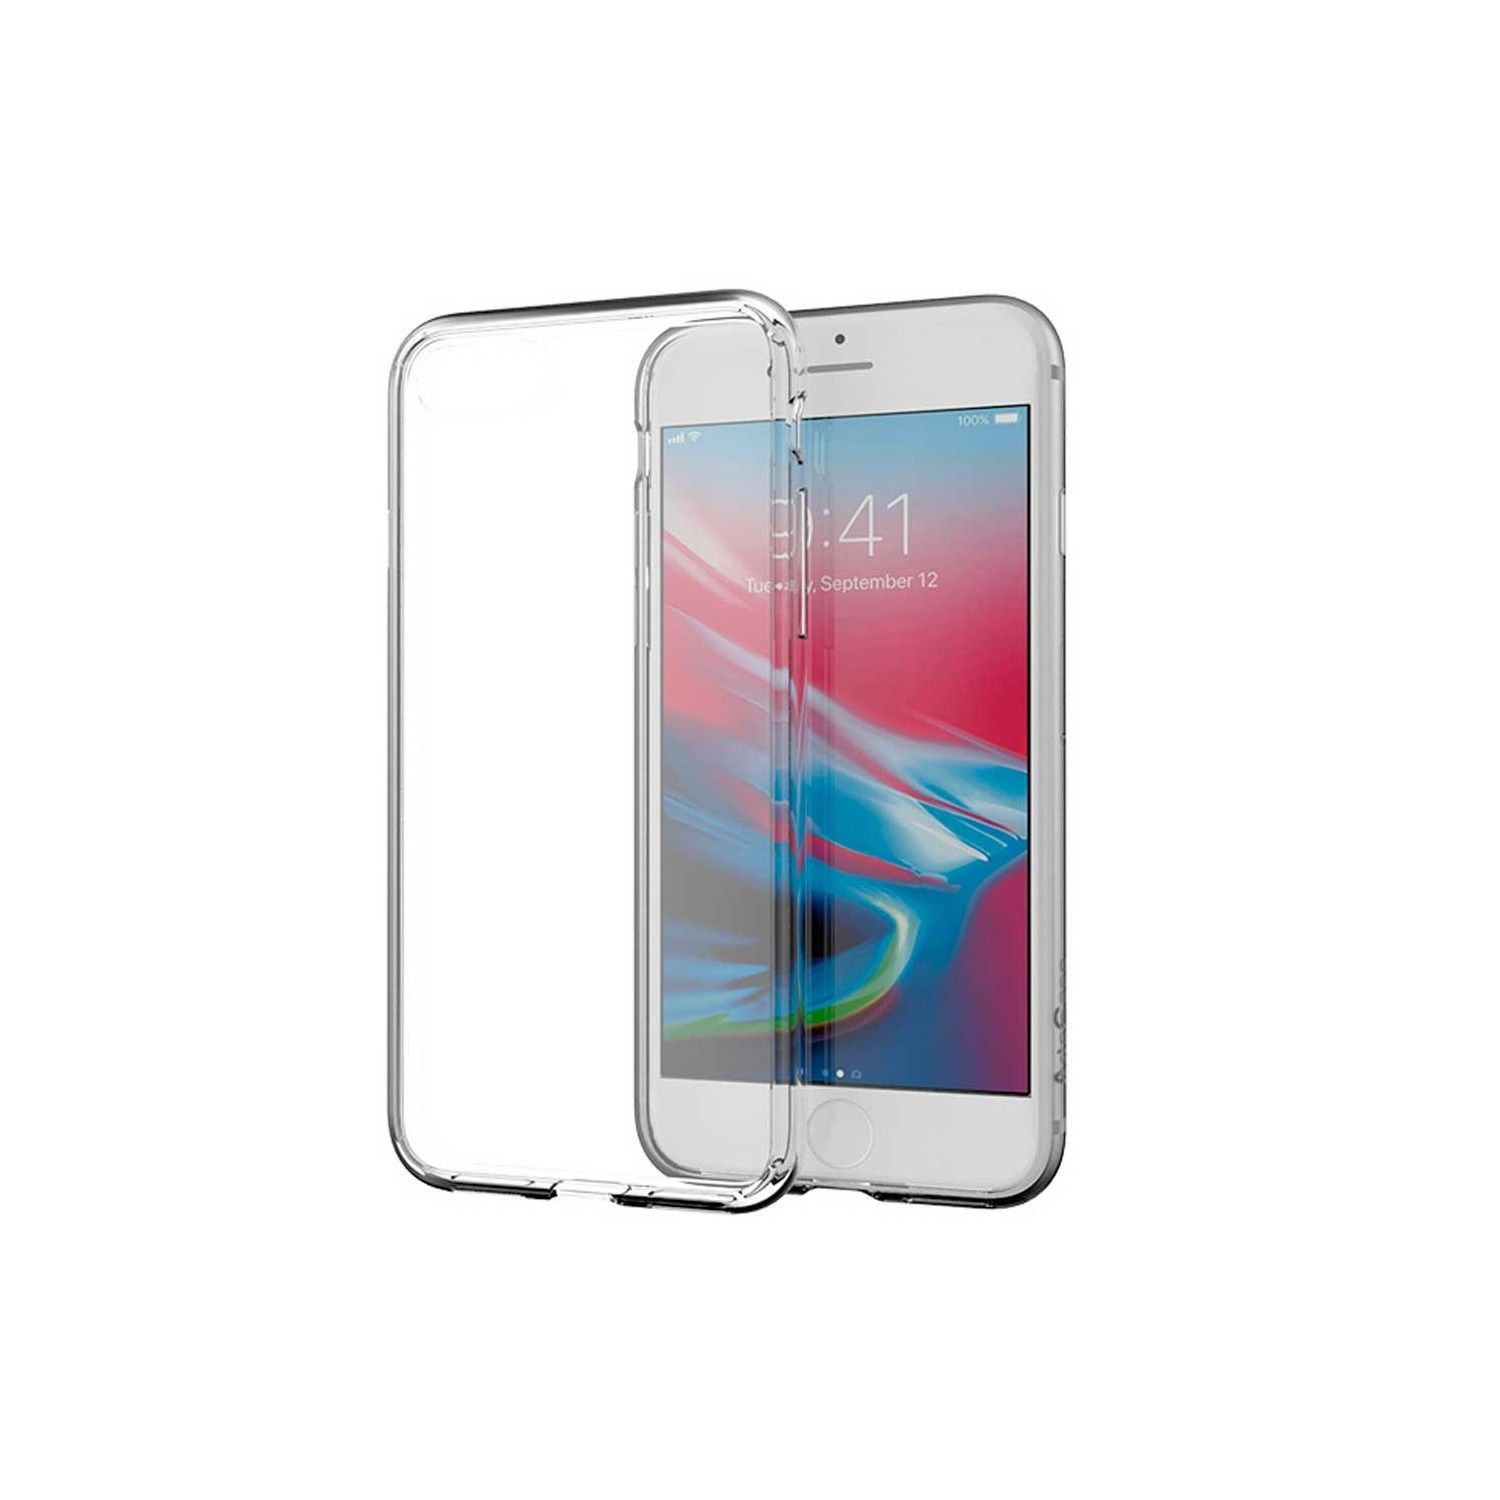 Case - ArtsCase Impact for iPhone SE 2020 iPhone 8 - Clear